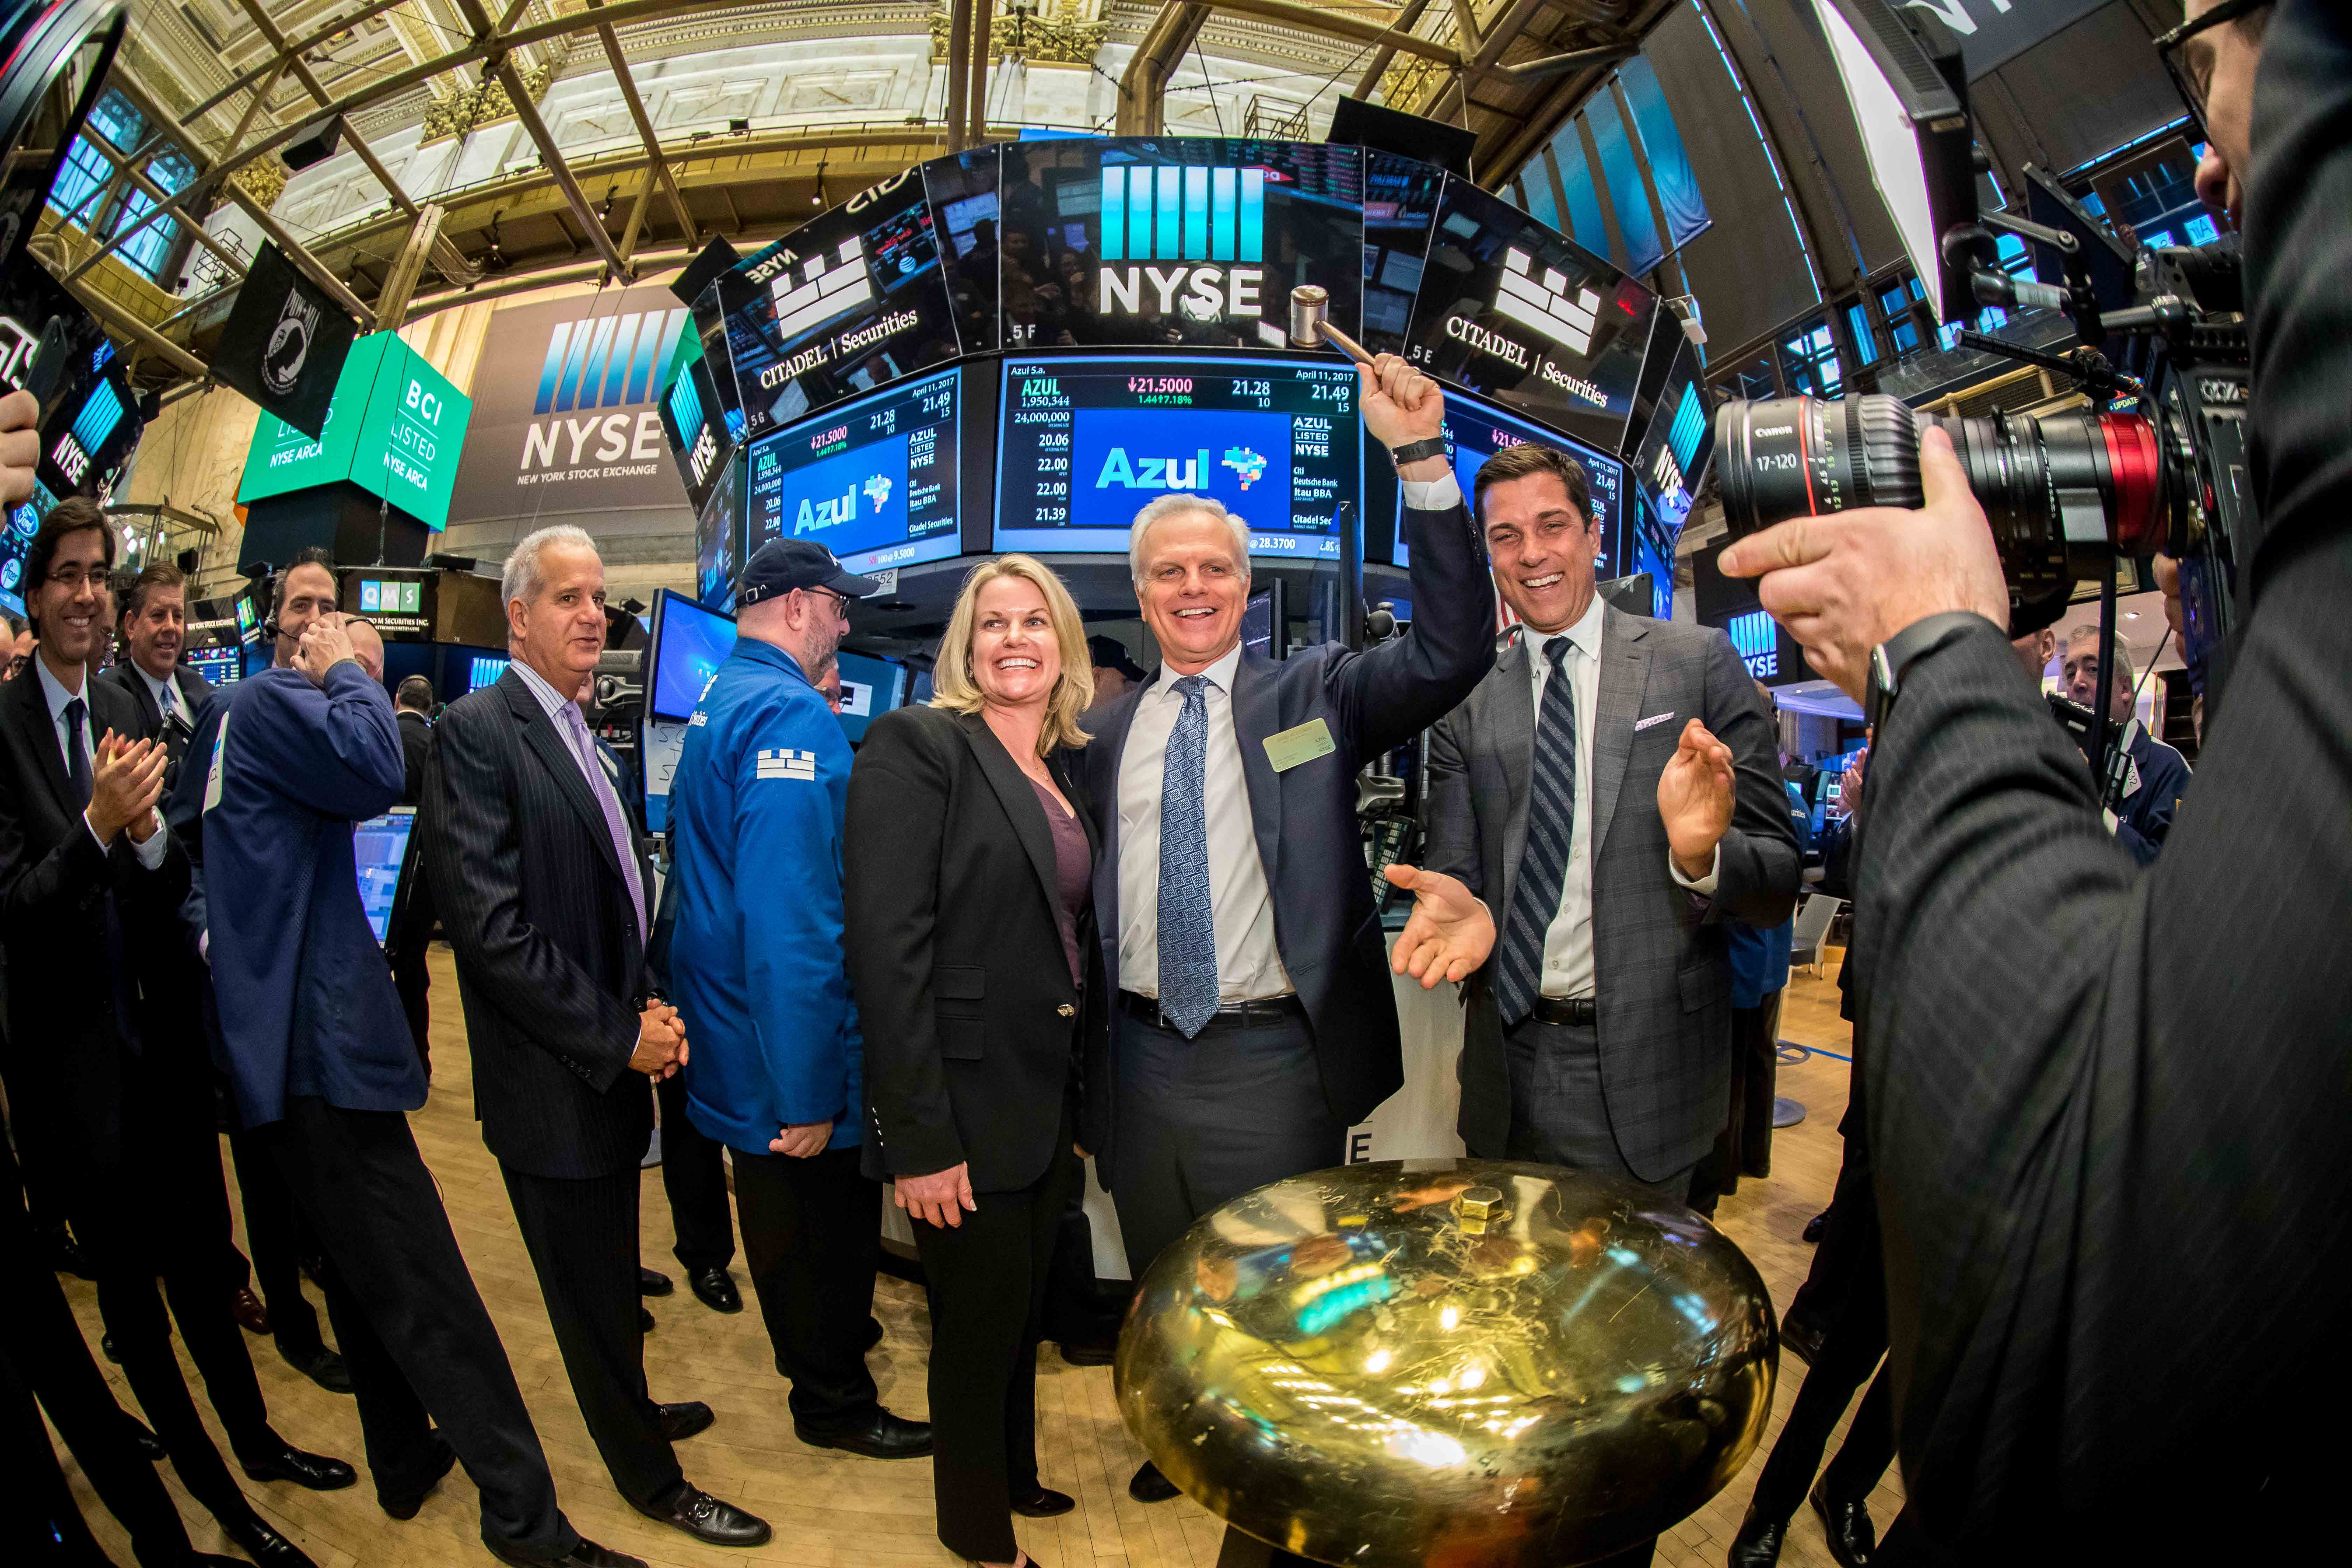 Azul IPO Second best, Two by two, John